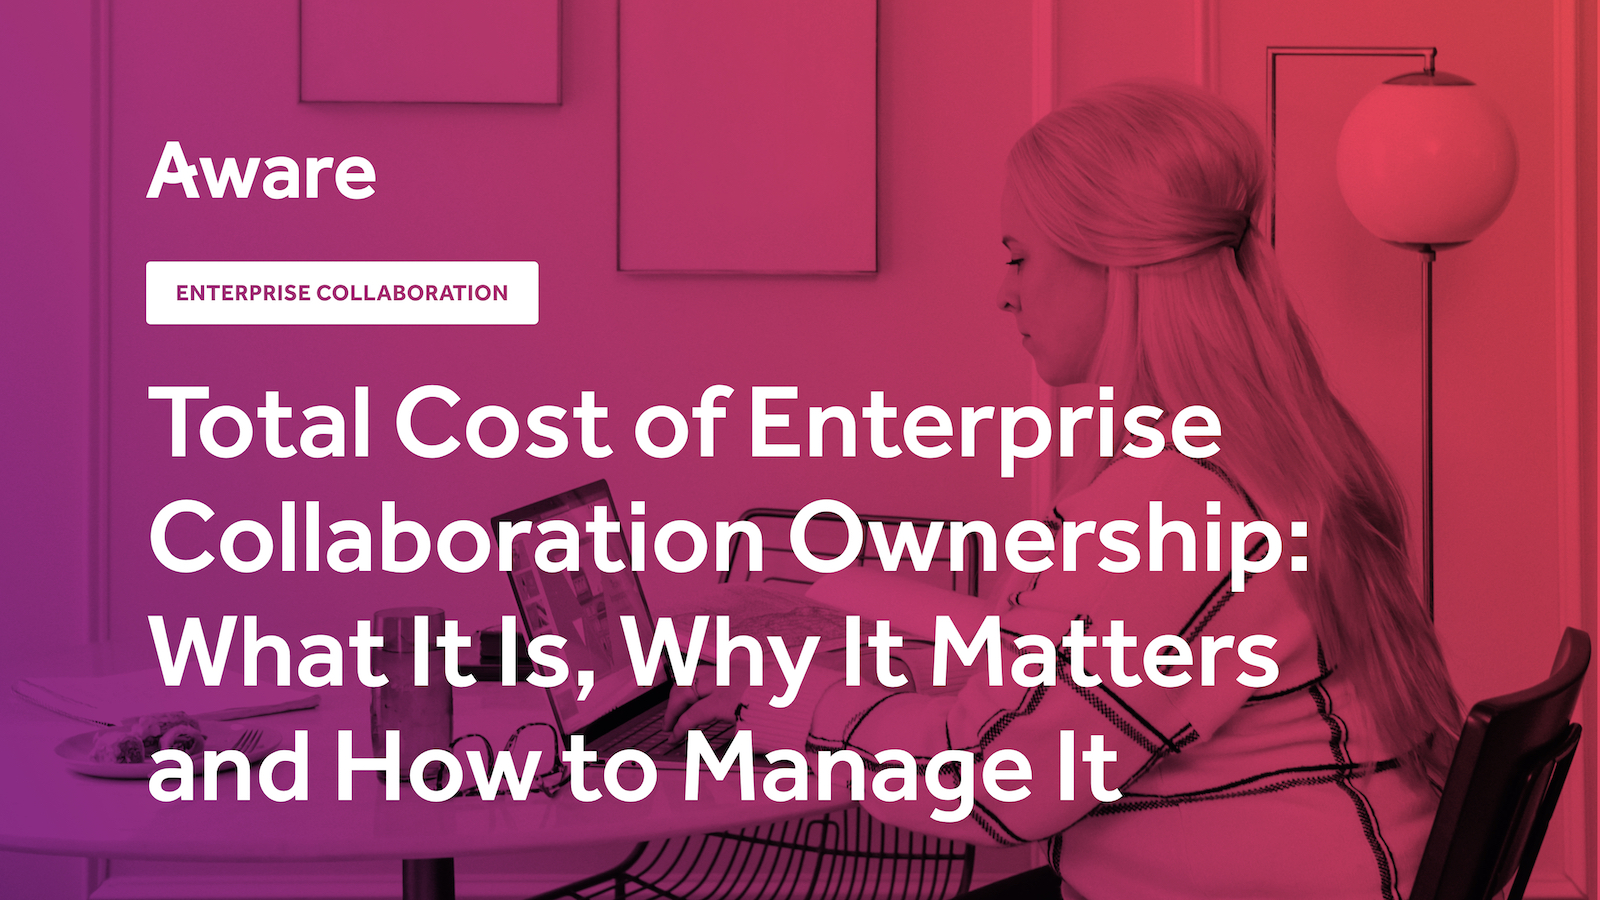 Total Cost of Enterprise Collaboration Ownership: What It Is, Why It Matters and How to Manage It